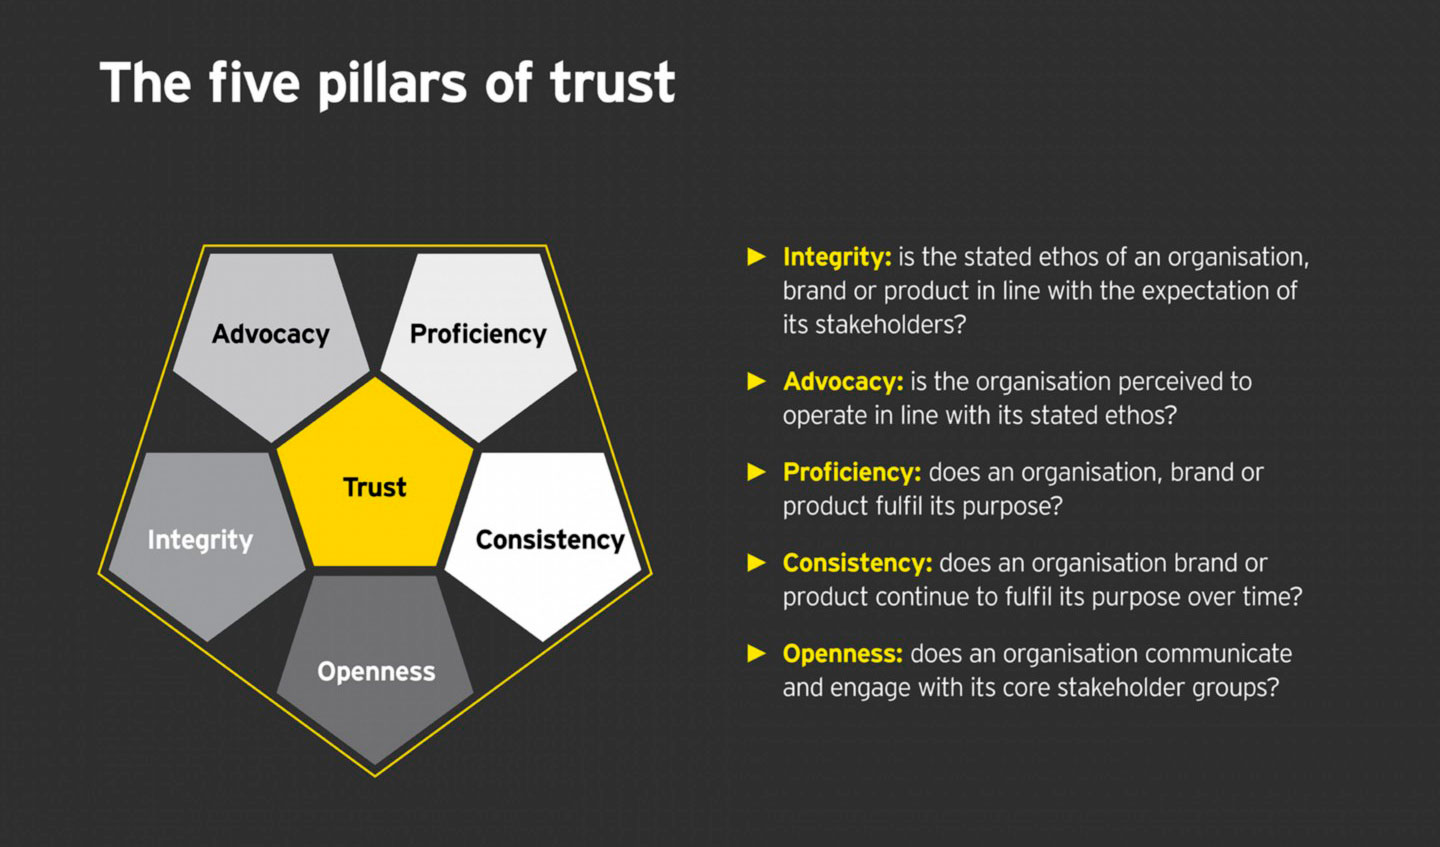 EY - The five pillars of trust